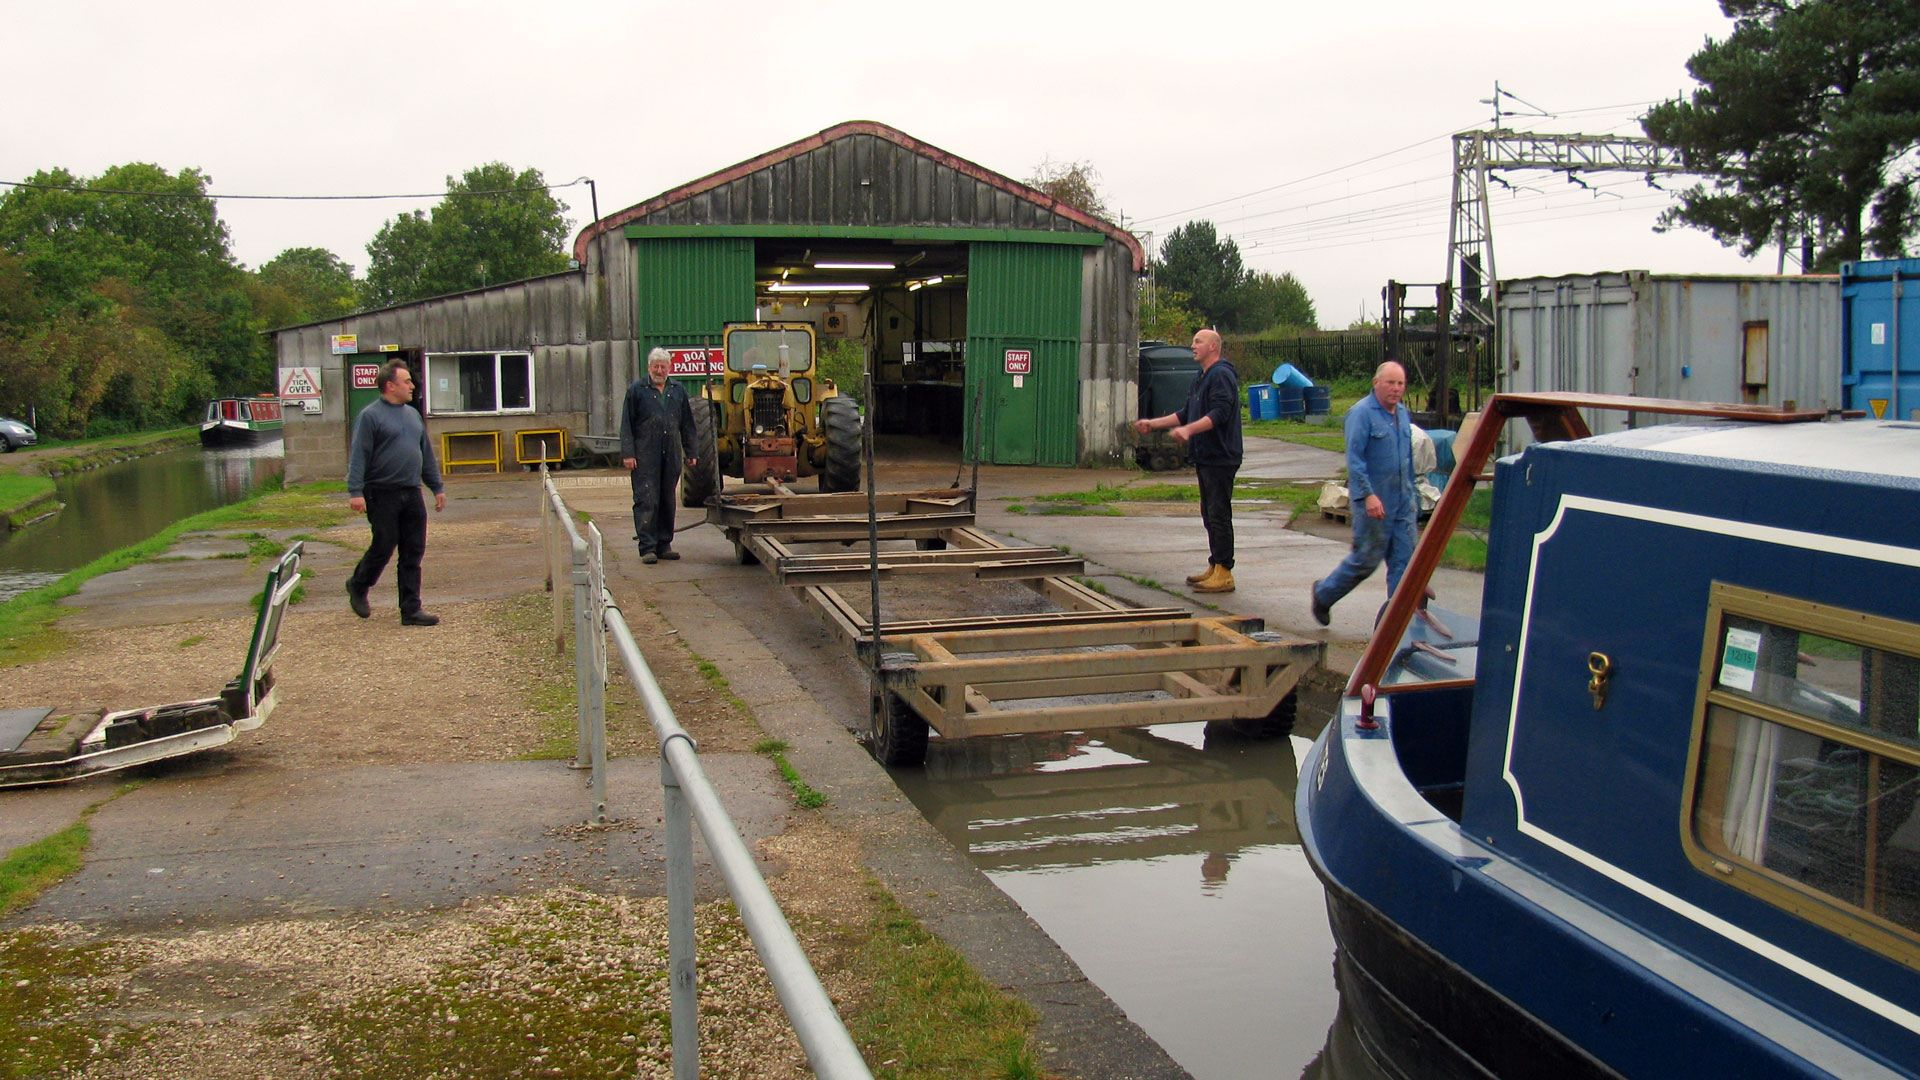 Waiting for the lift up the ramp into the paint shed at Rose Narrowboats